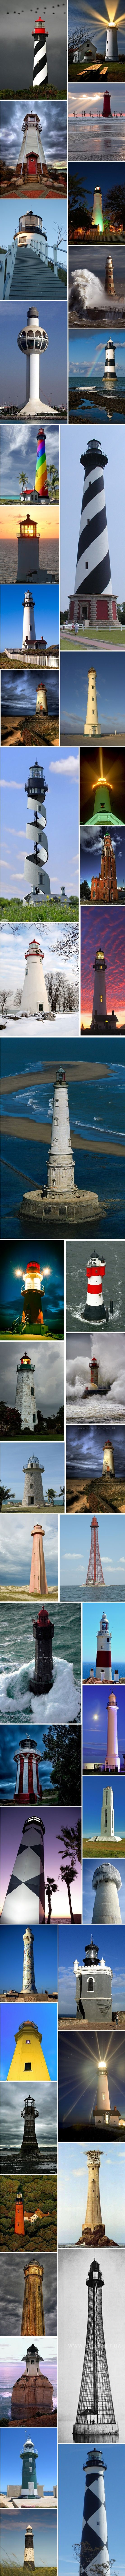 50 Amazing & Beautiful Lighthouses from Around the World | Most Beautiful Pages